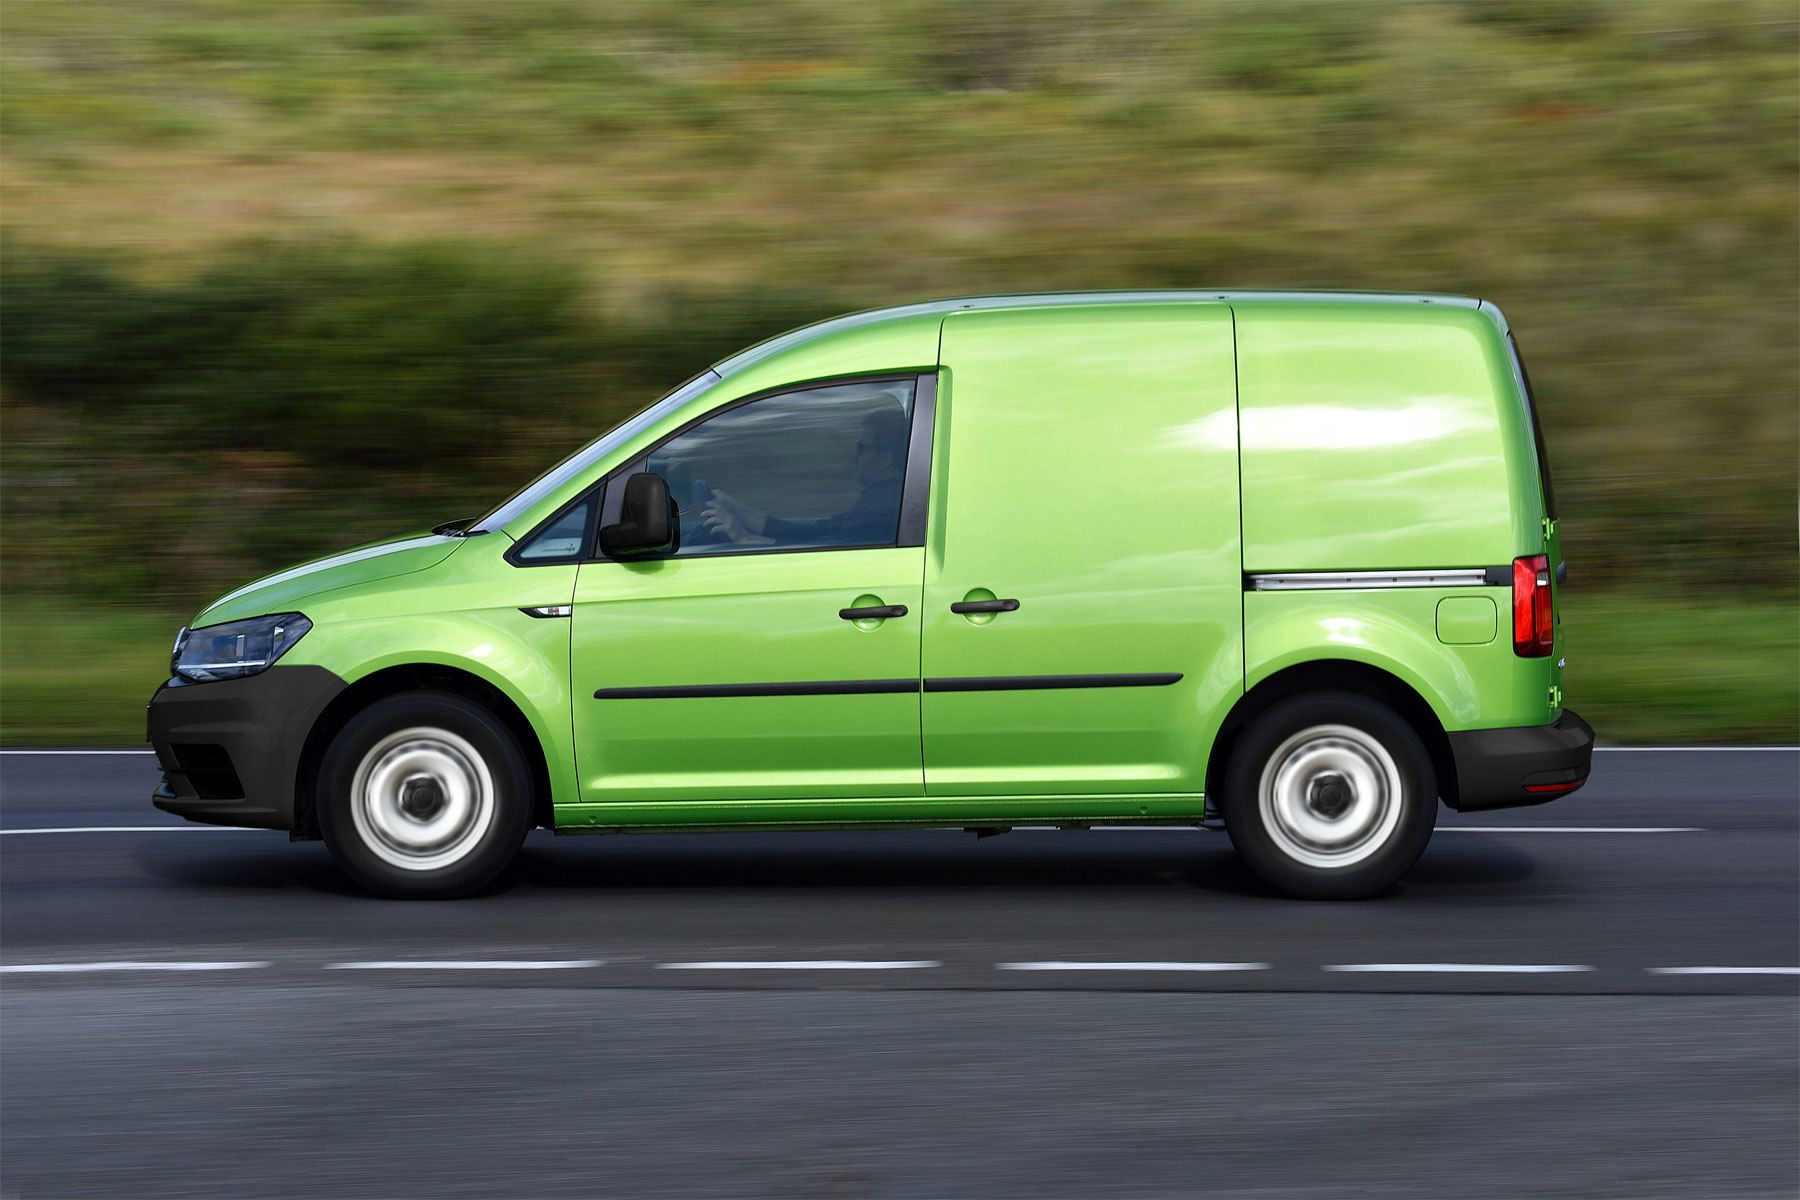 VW Caddy now available with money-saving business pack